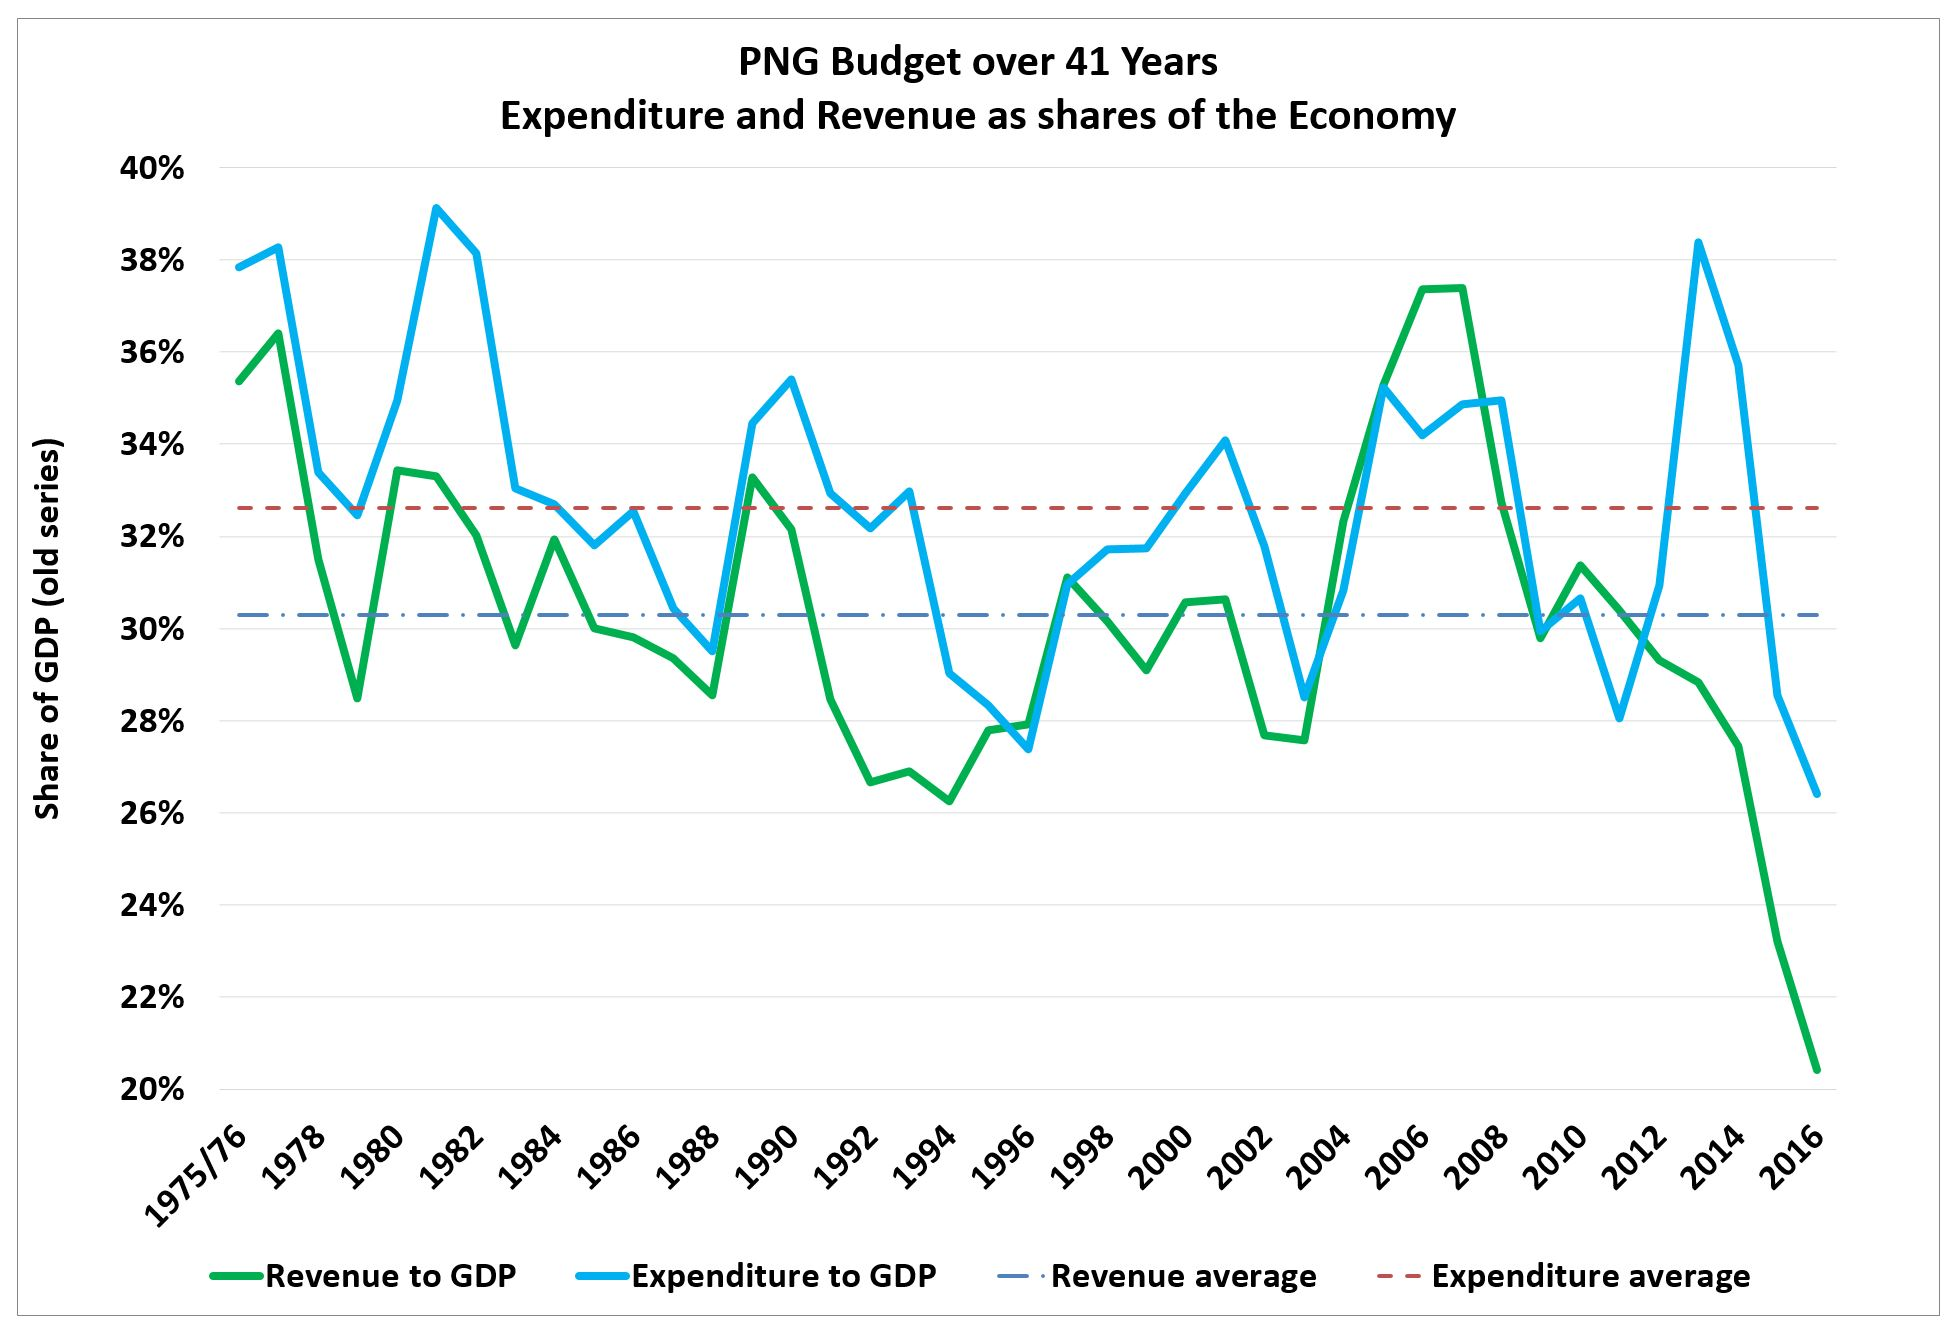 PNG exp and revenue 41 years